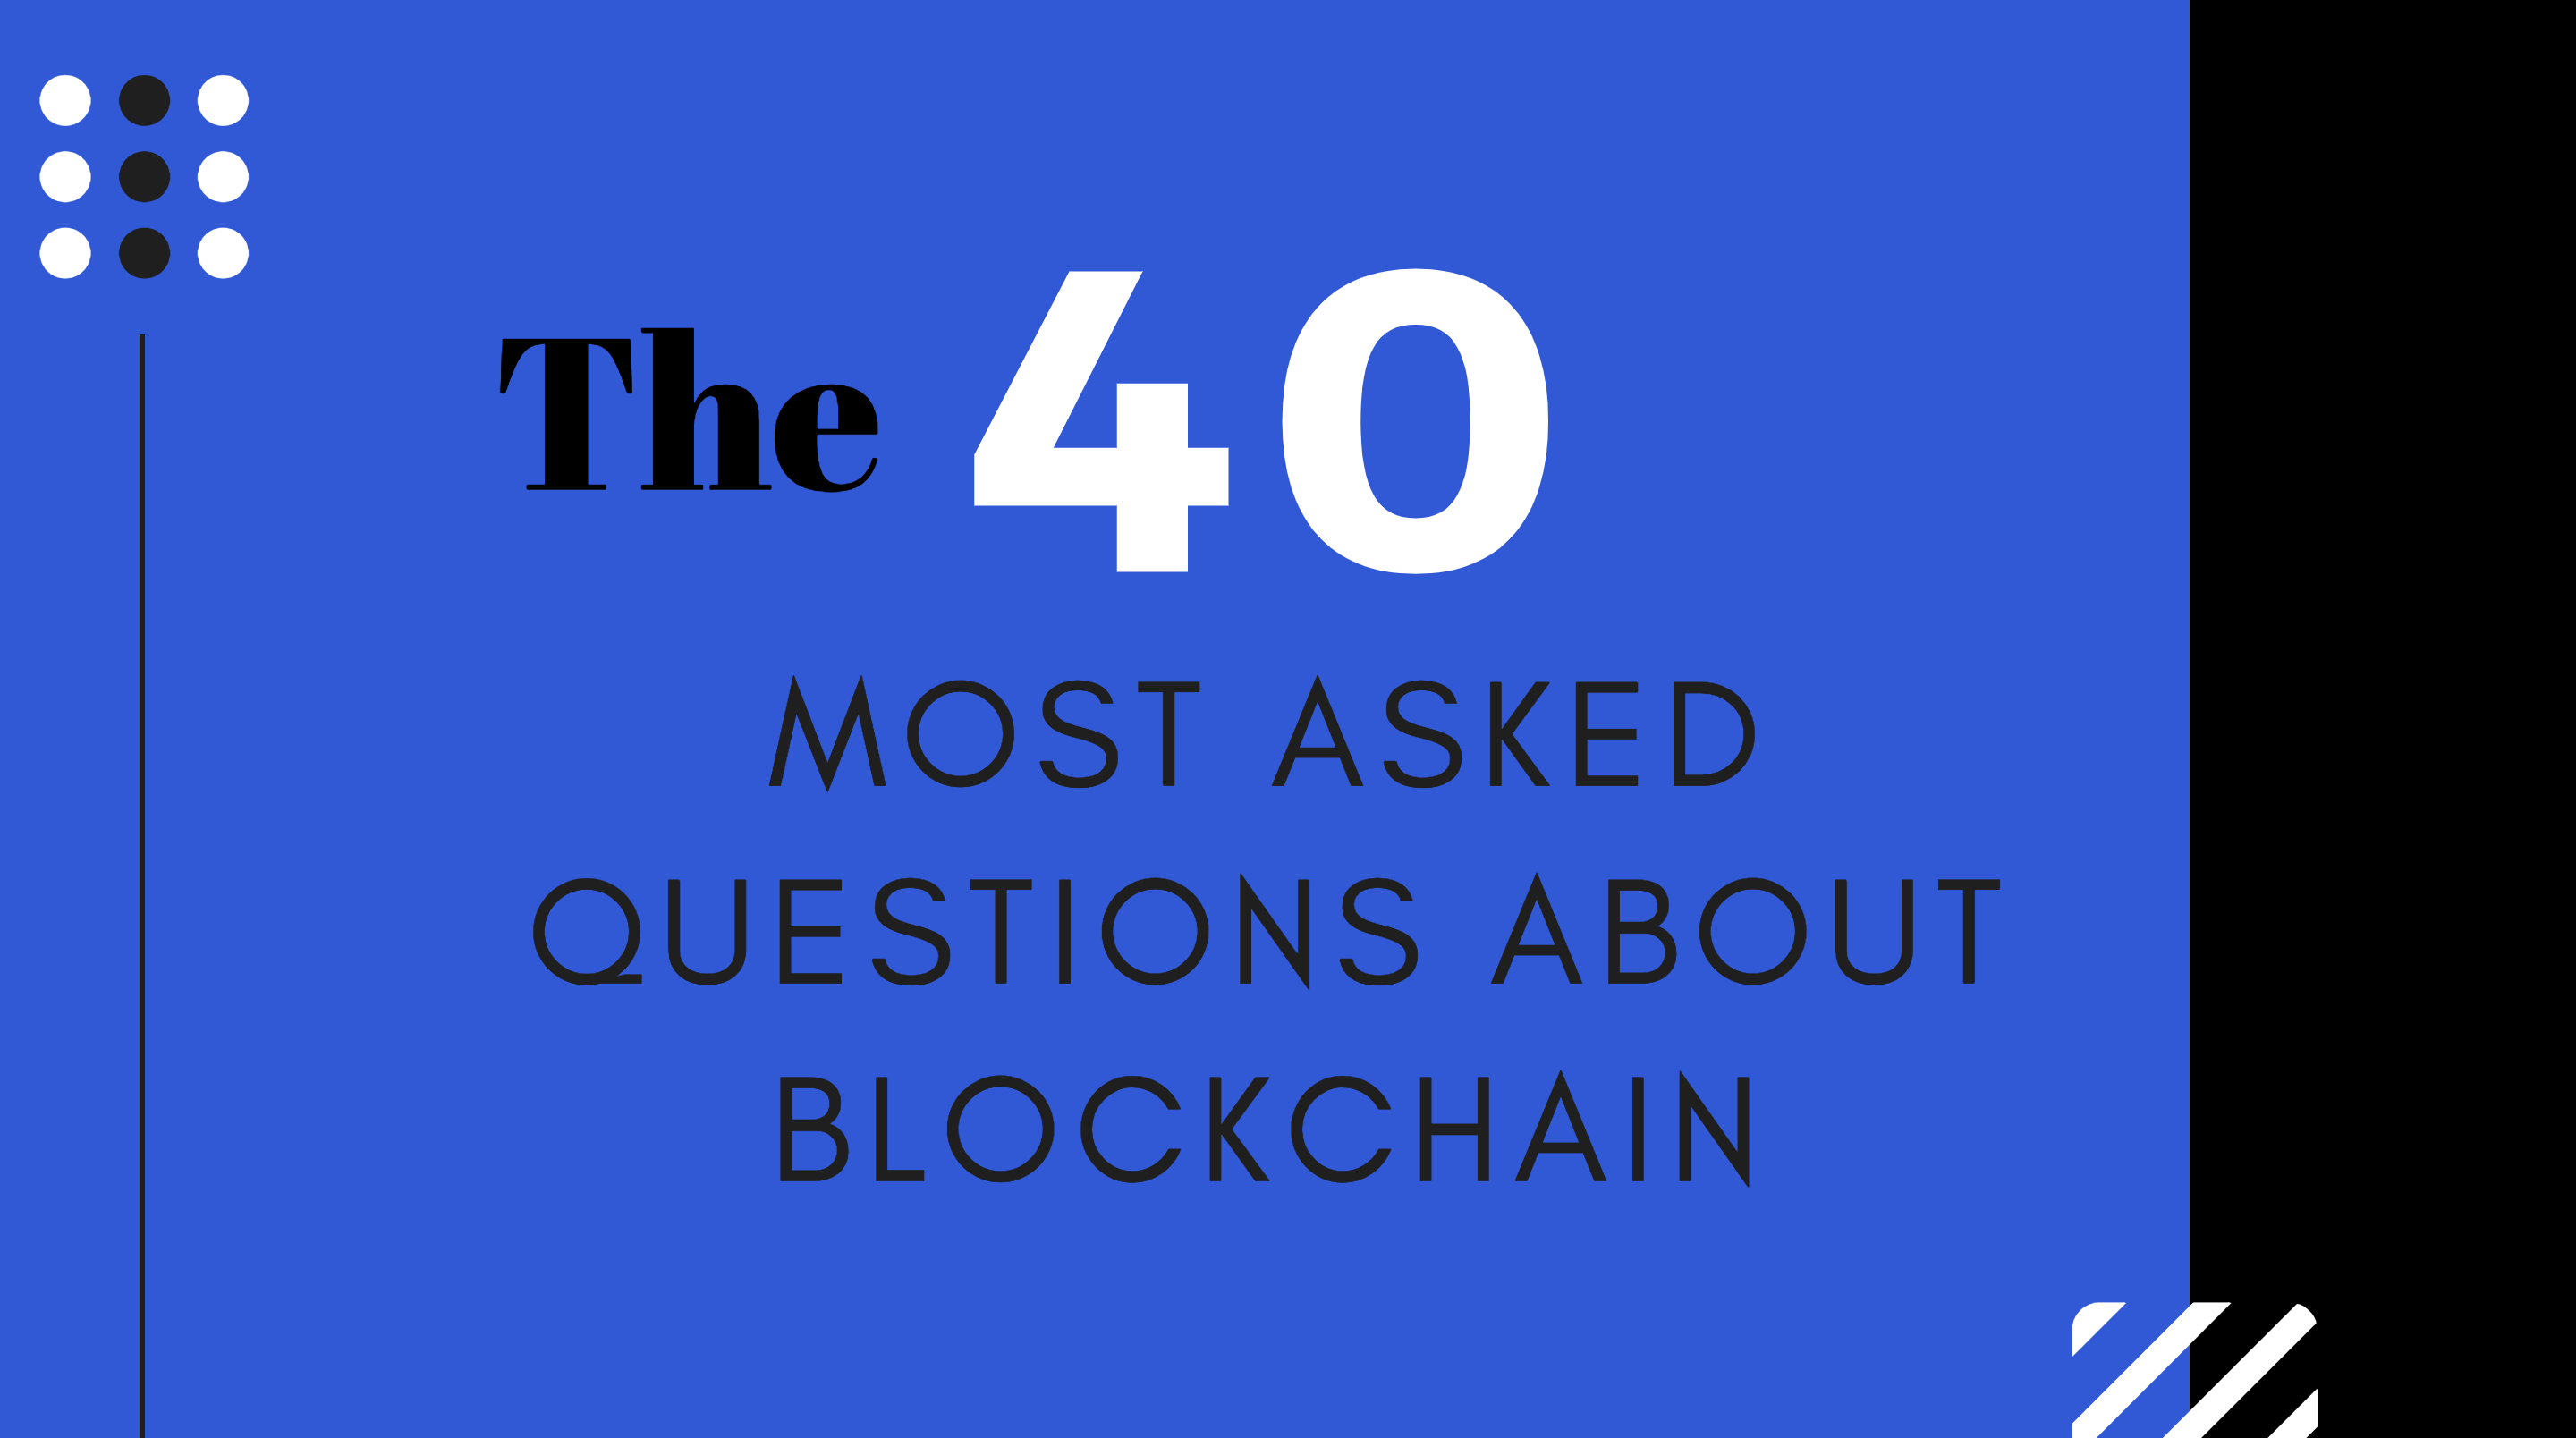 Answers to the 40 Most Asked Questions about Blockchain